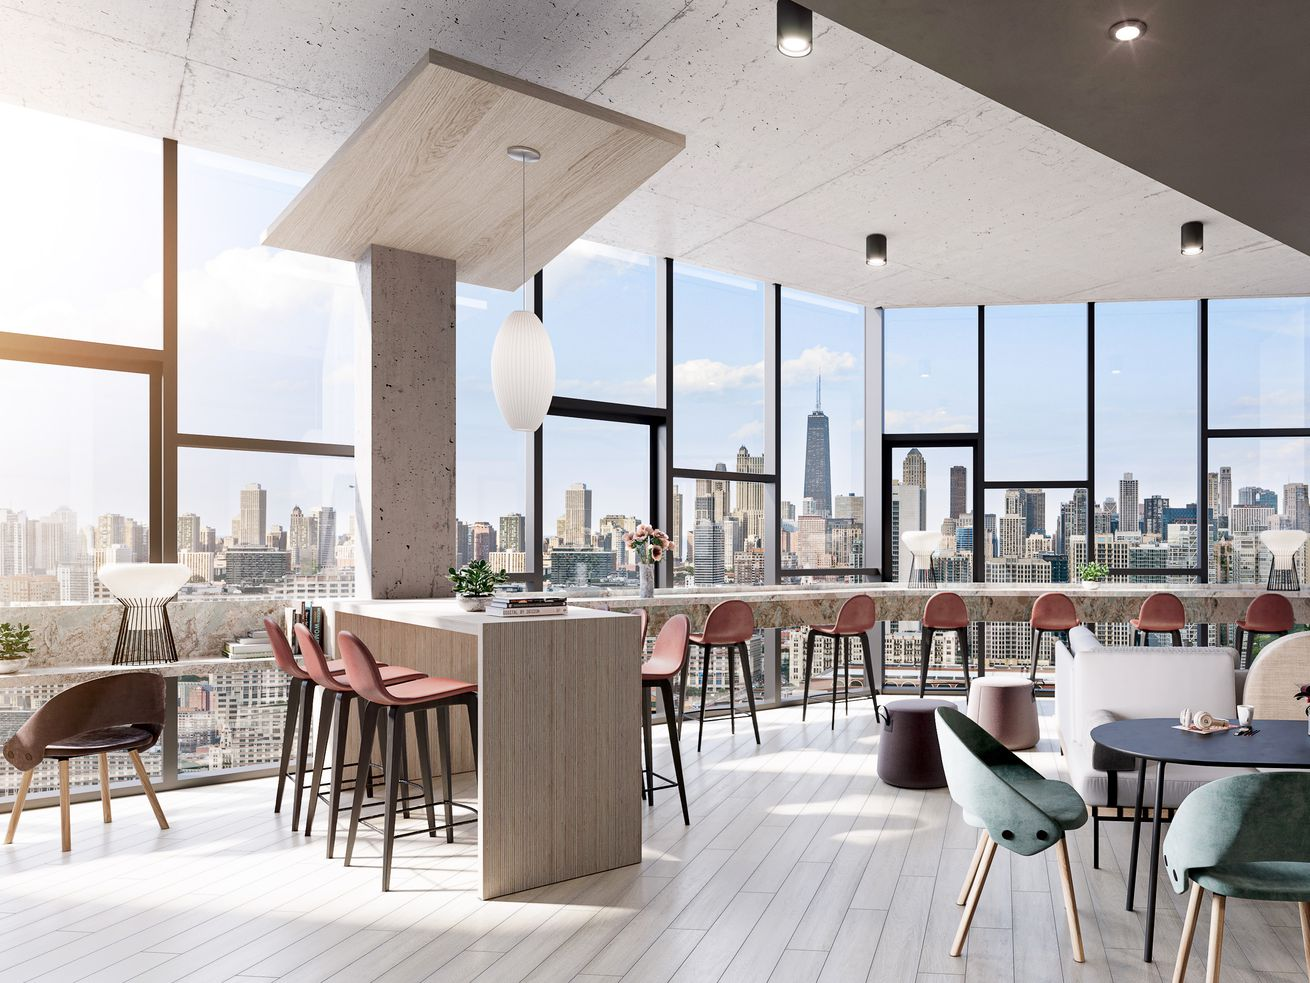 A room with a glass wall overlooking the Chicago skyline. Inside there is a long, curving wood table with brown stools as well as round tables surrounded by circular chairs.